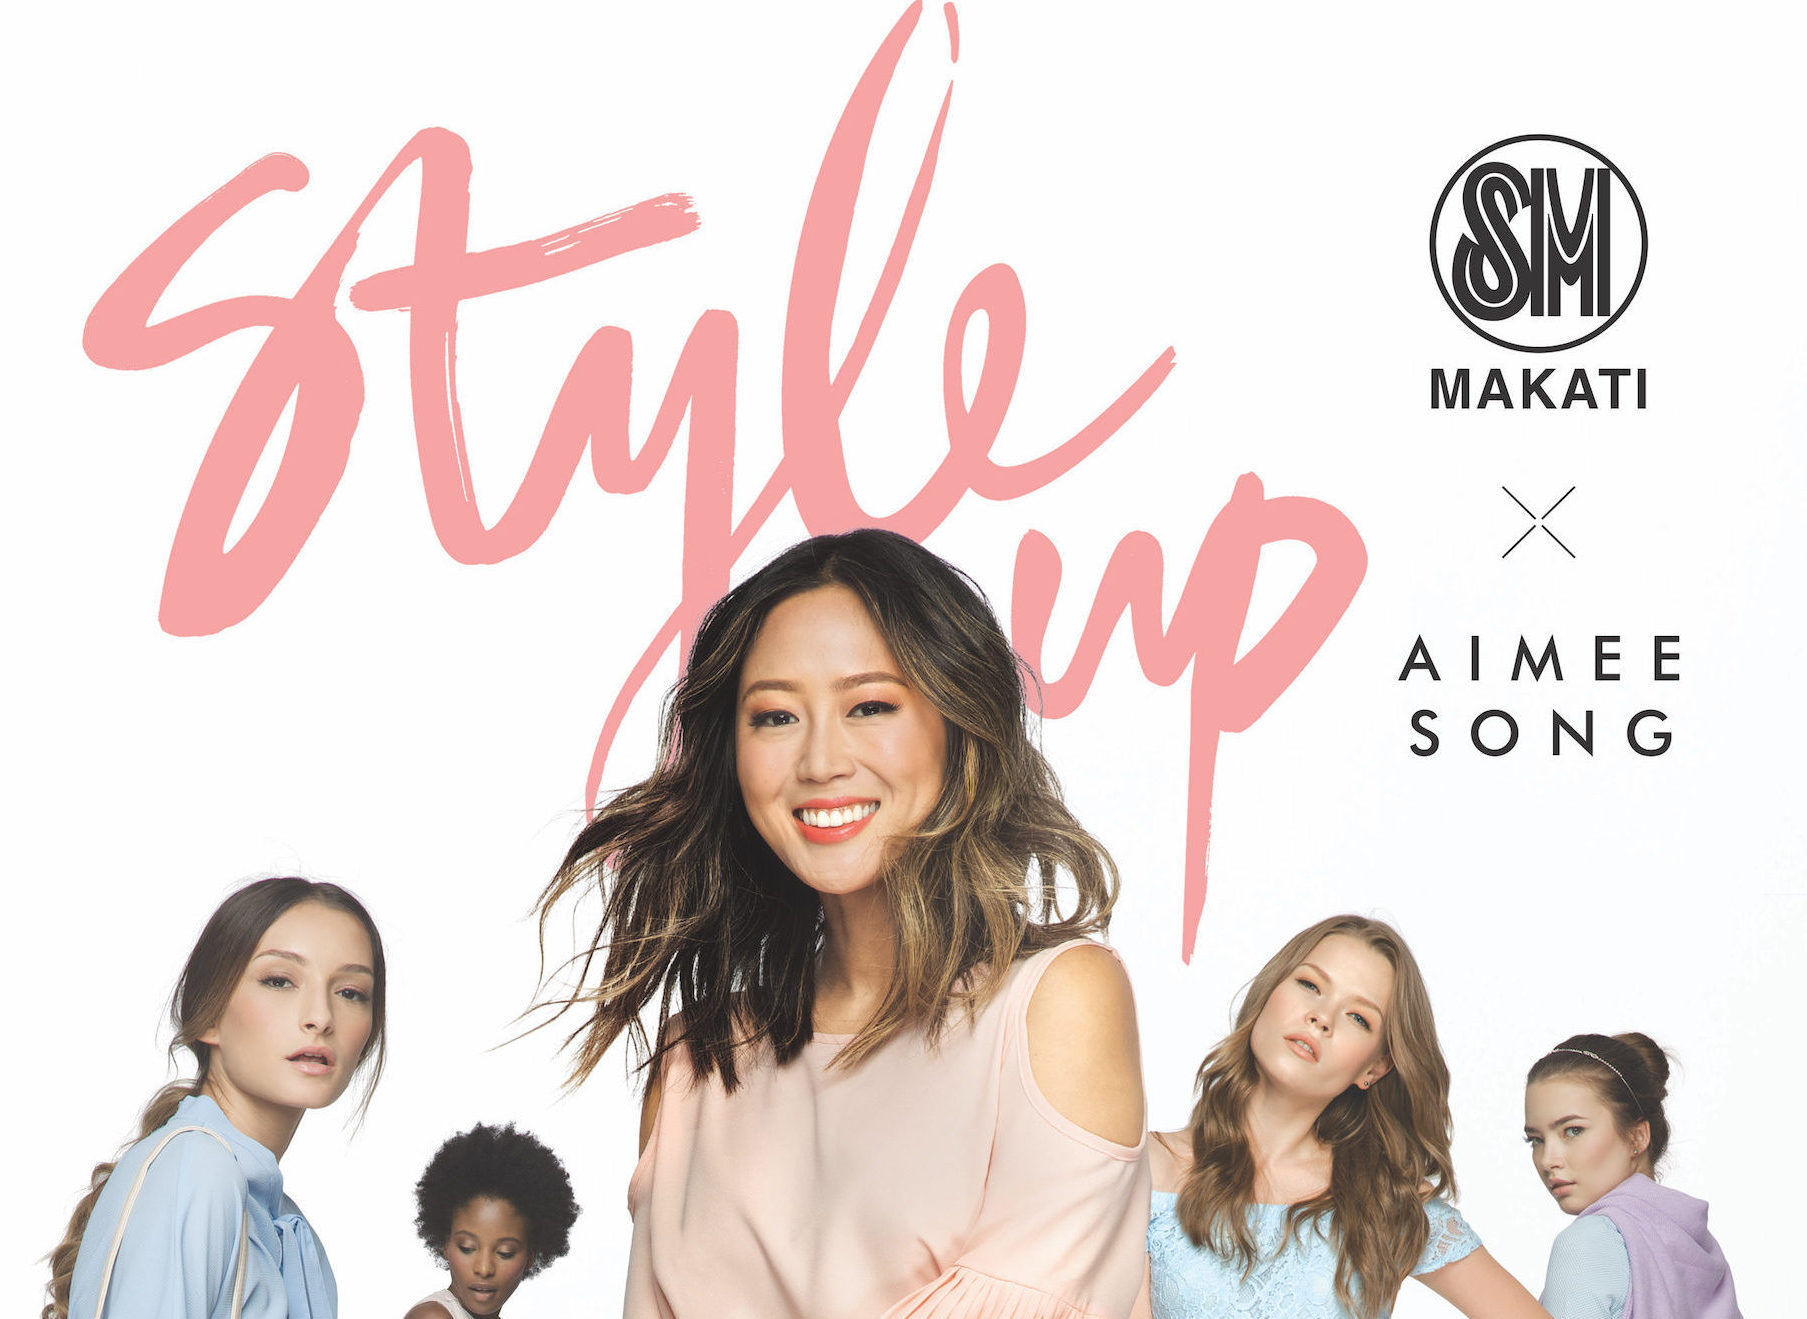 Style Up! SM Makati x Aimee Song